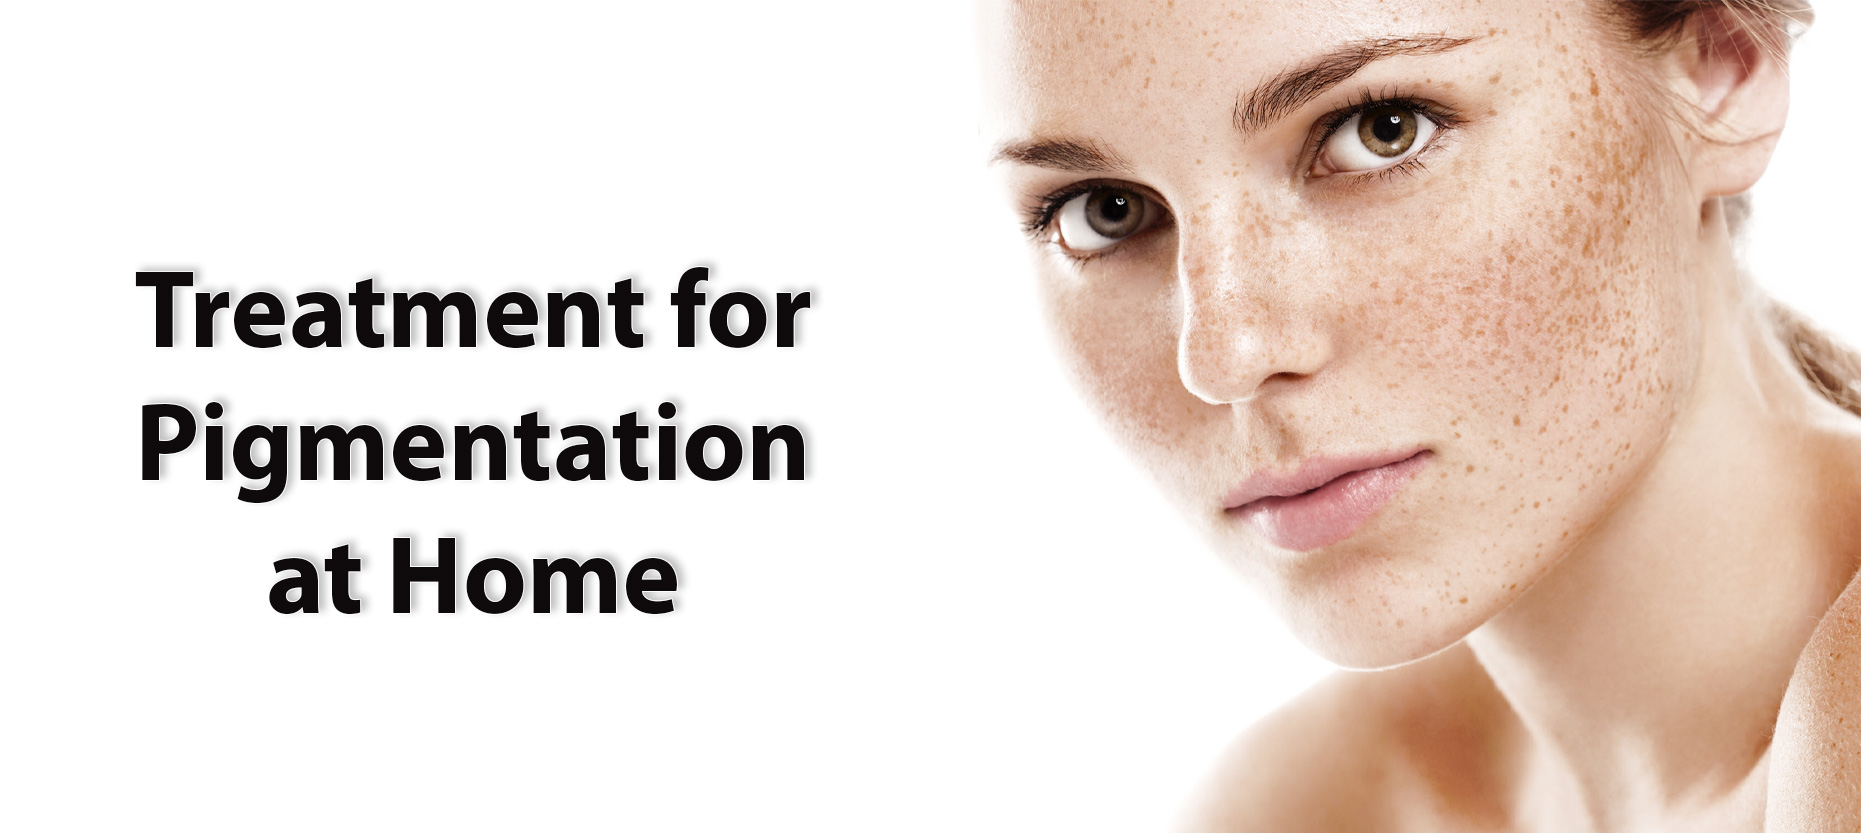 Treatment for Pigmentation at Home